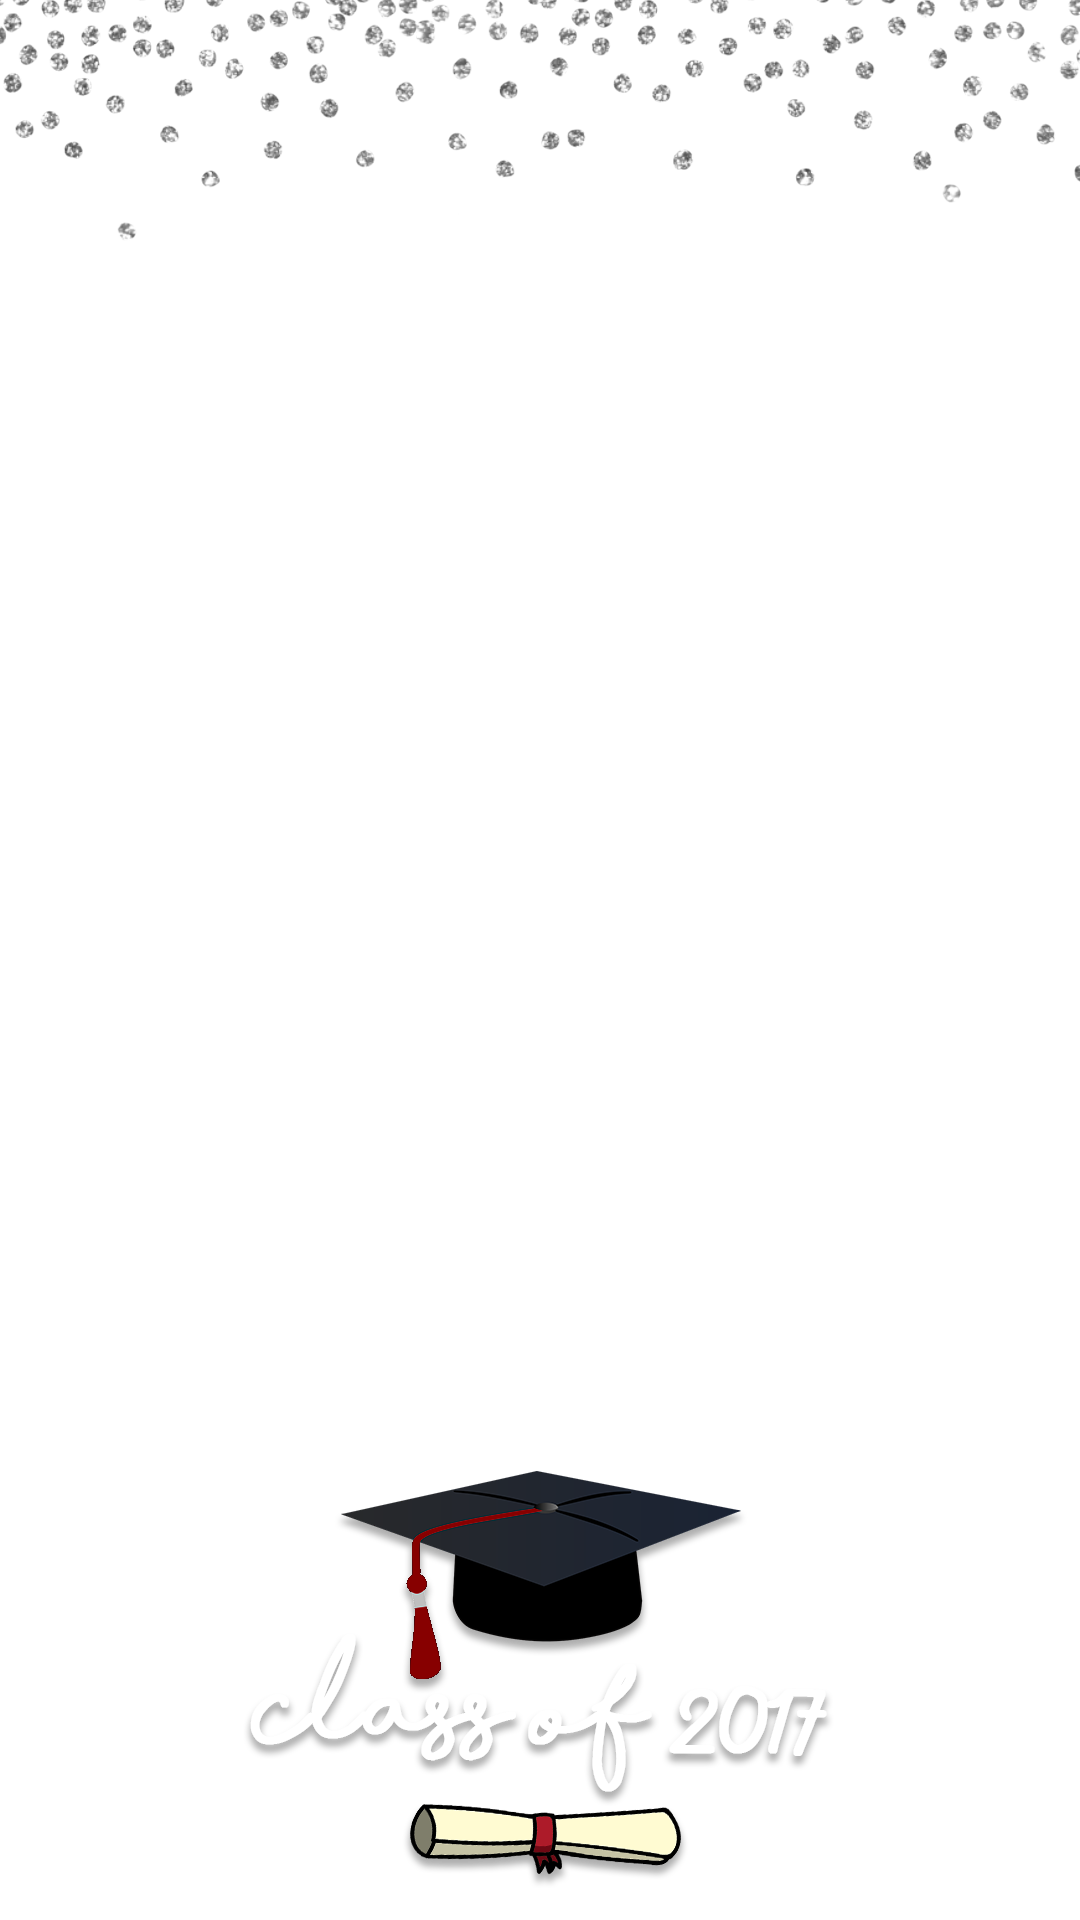 snapchat geofilter template free - class of 2017 graduation snapchat filter geofilter maker